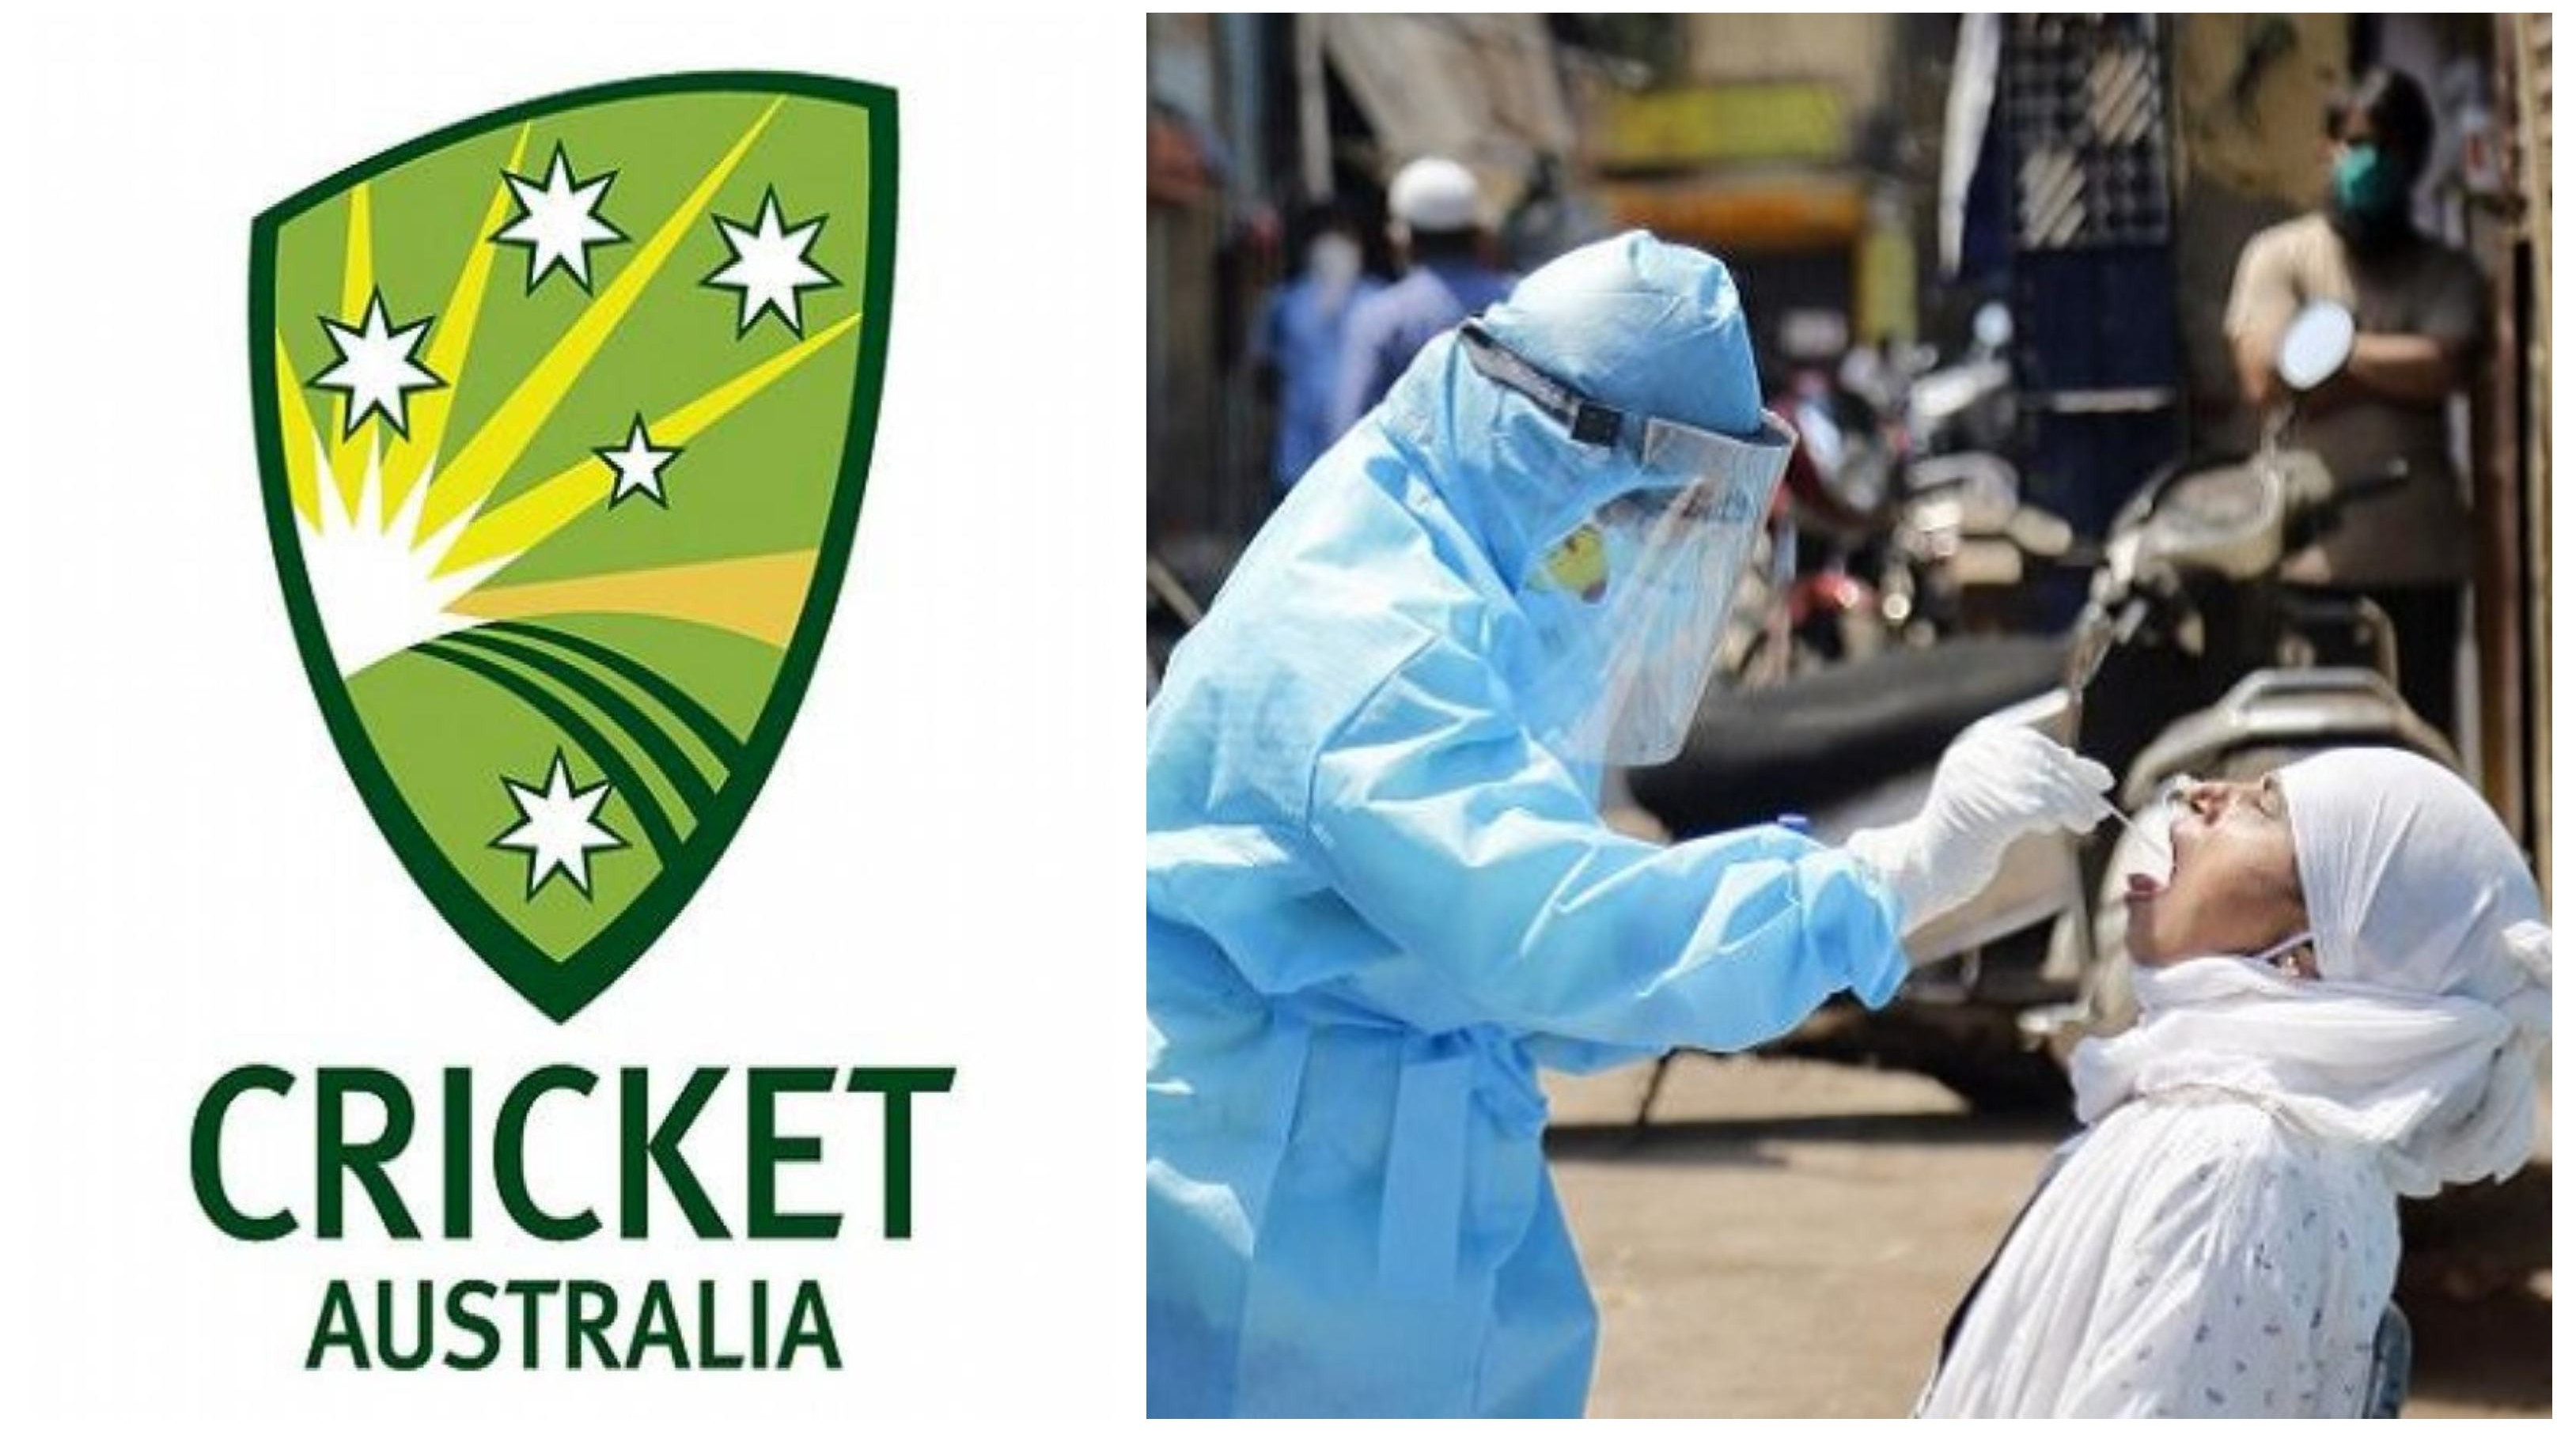 Cricket Australia donates $50,000 to aid India's fight against second COVID-19 wave